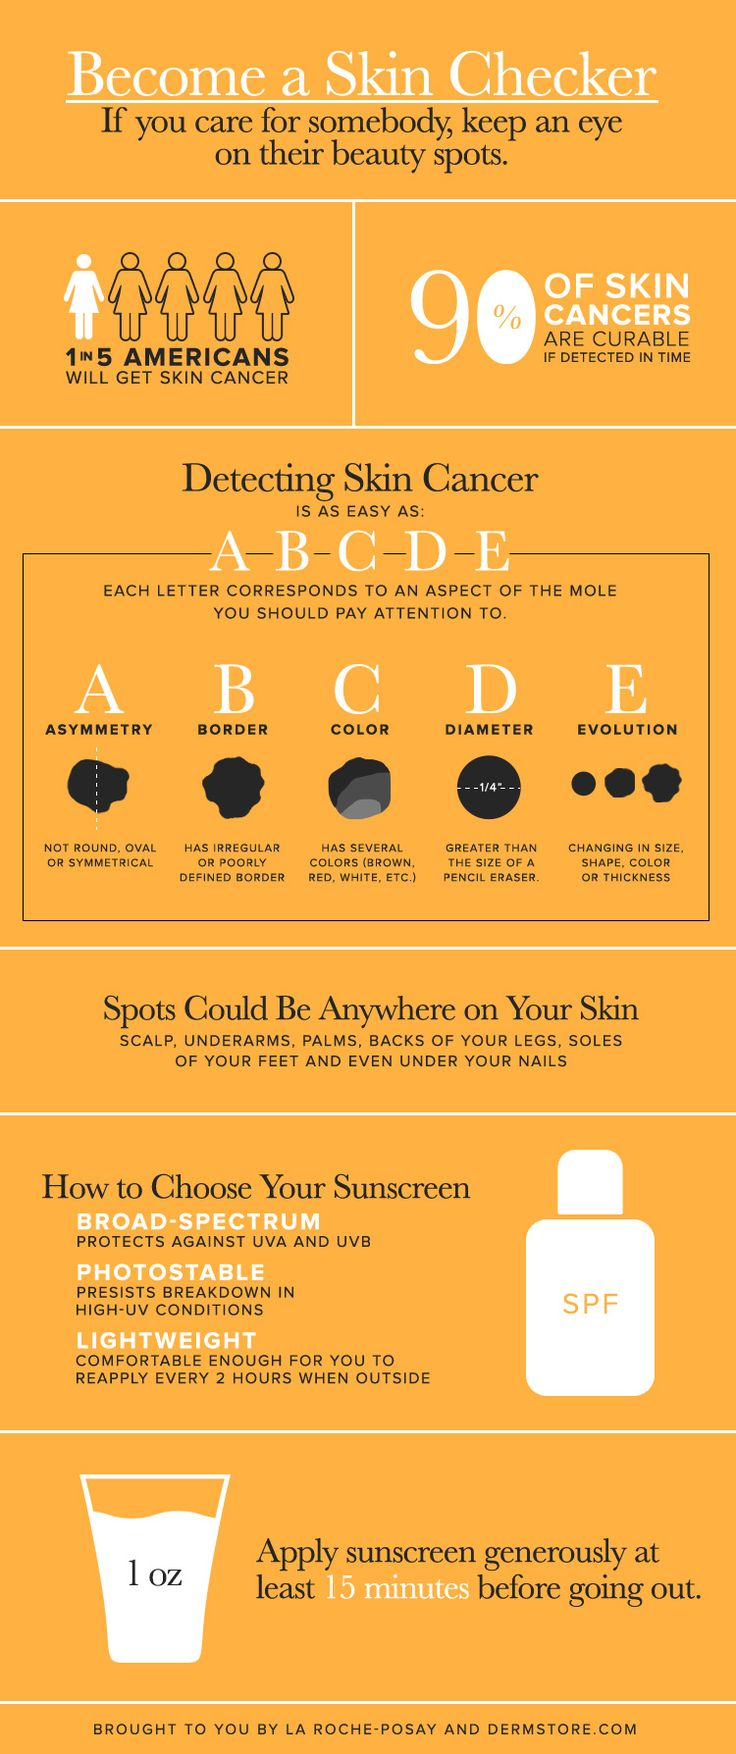 One in five Americans will be diagnosed with skin cancer, according to the American Academy of Dermatology, but here's the good news: 90 percent of skin cancer cases are 100 percent curable if detected in time. Education, early detection and proper skin protection—they all play a part in the fight against this deadly disease.